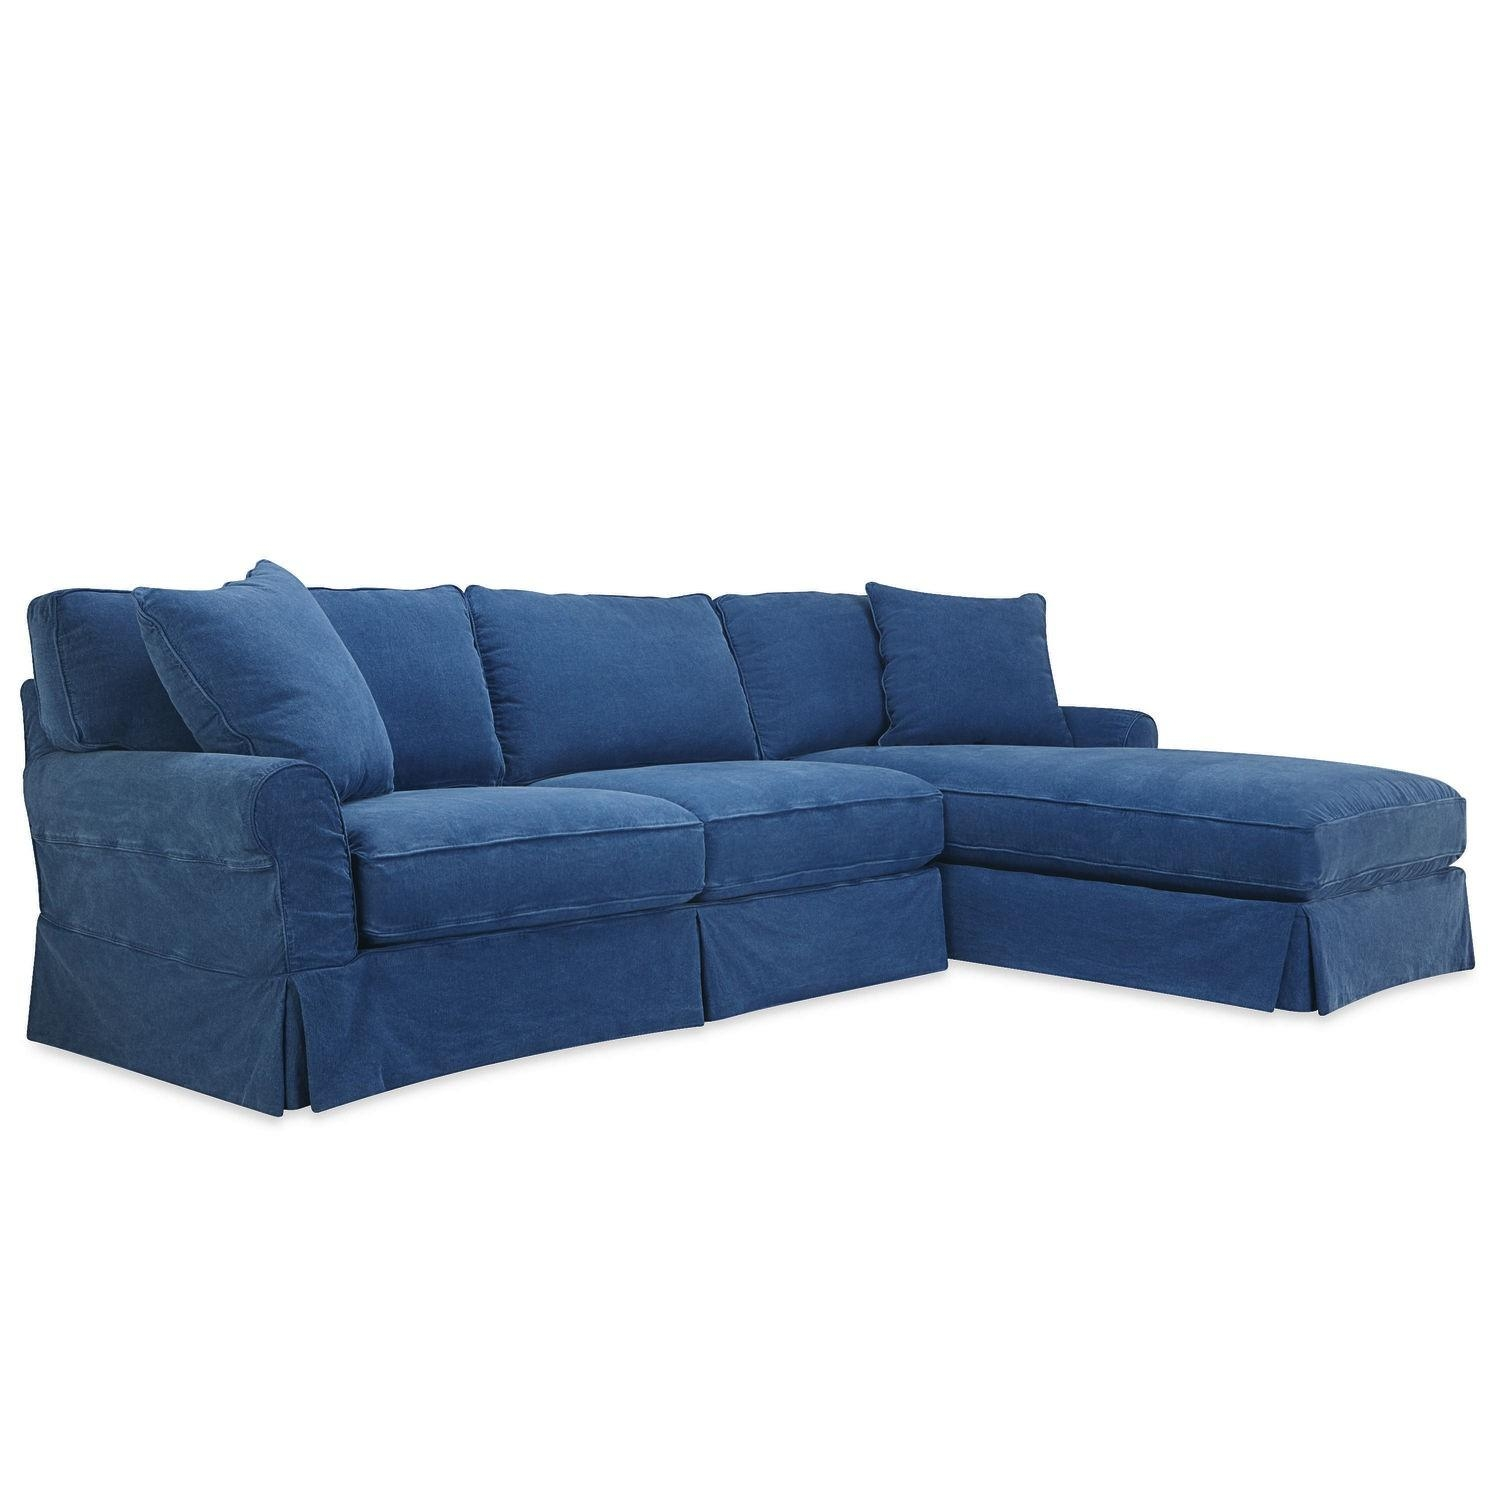 American Furniture | Nantucket Chaise Sectional | Lee Industries Regarding Lee Industries Sectional (View 12 of 20)